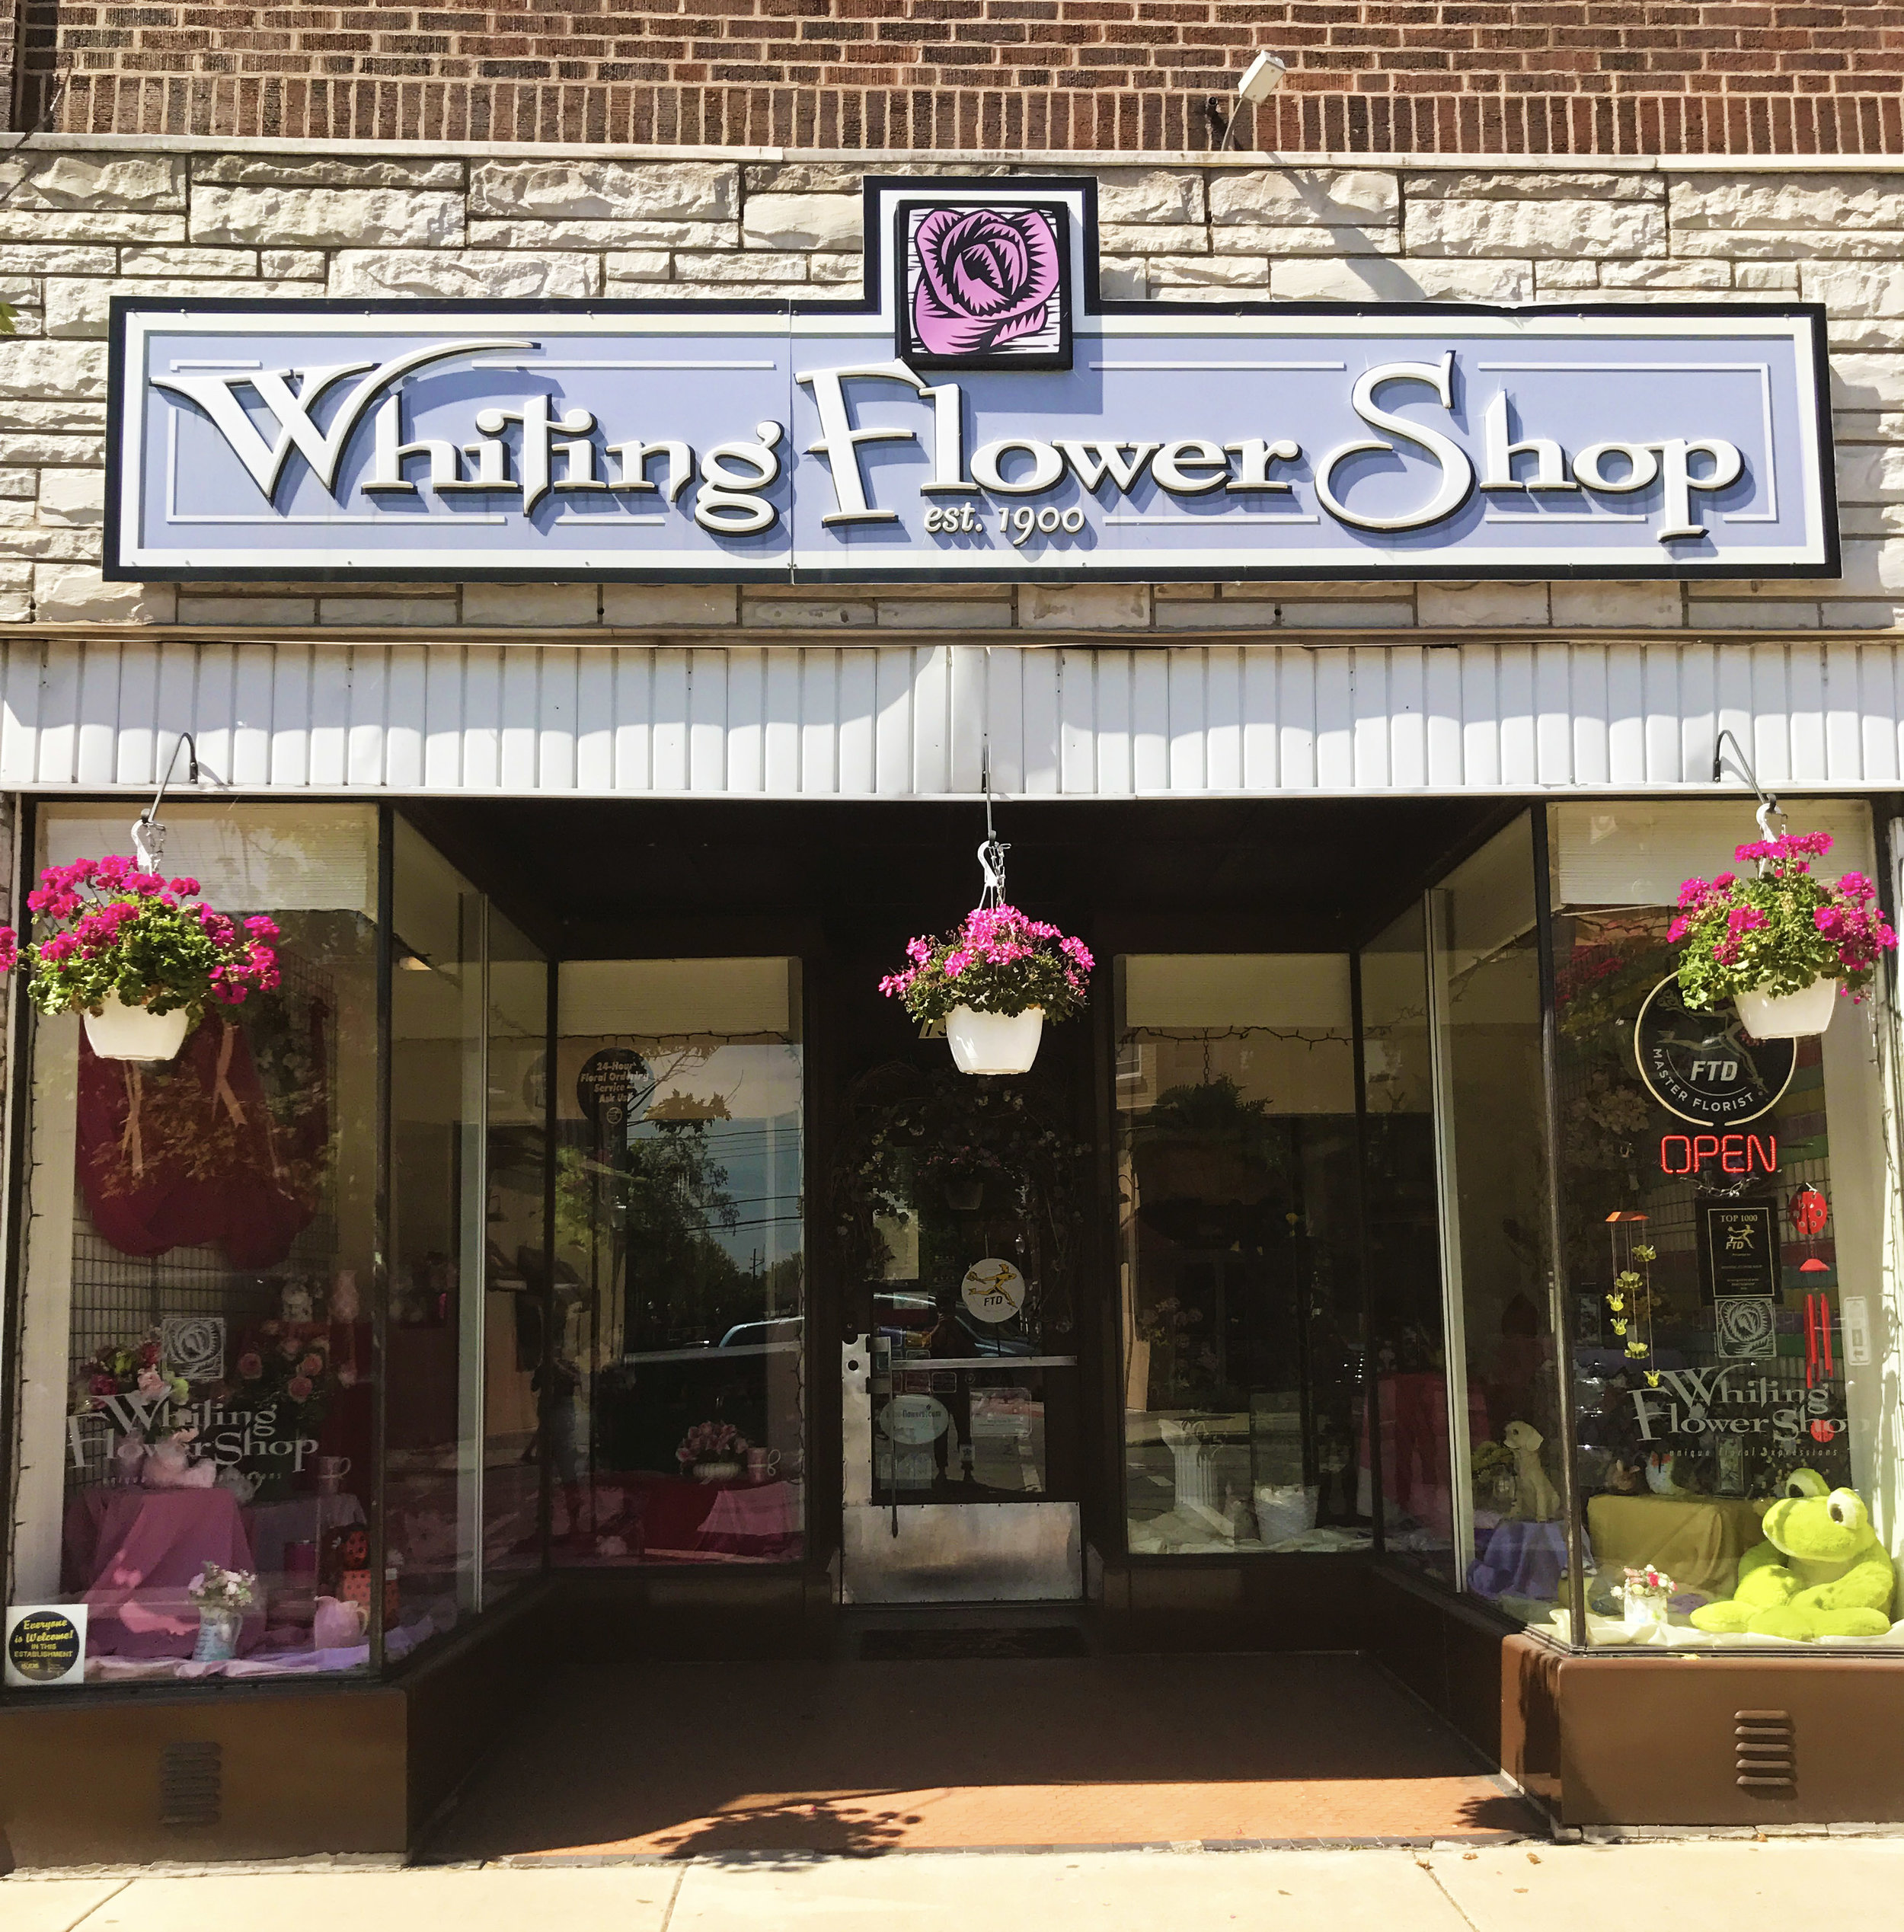 whiting-flower-shop.jpg